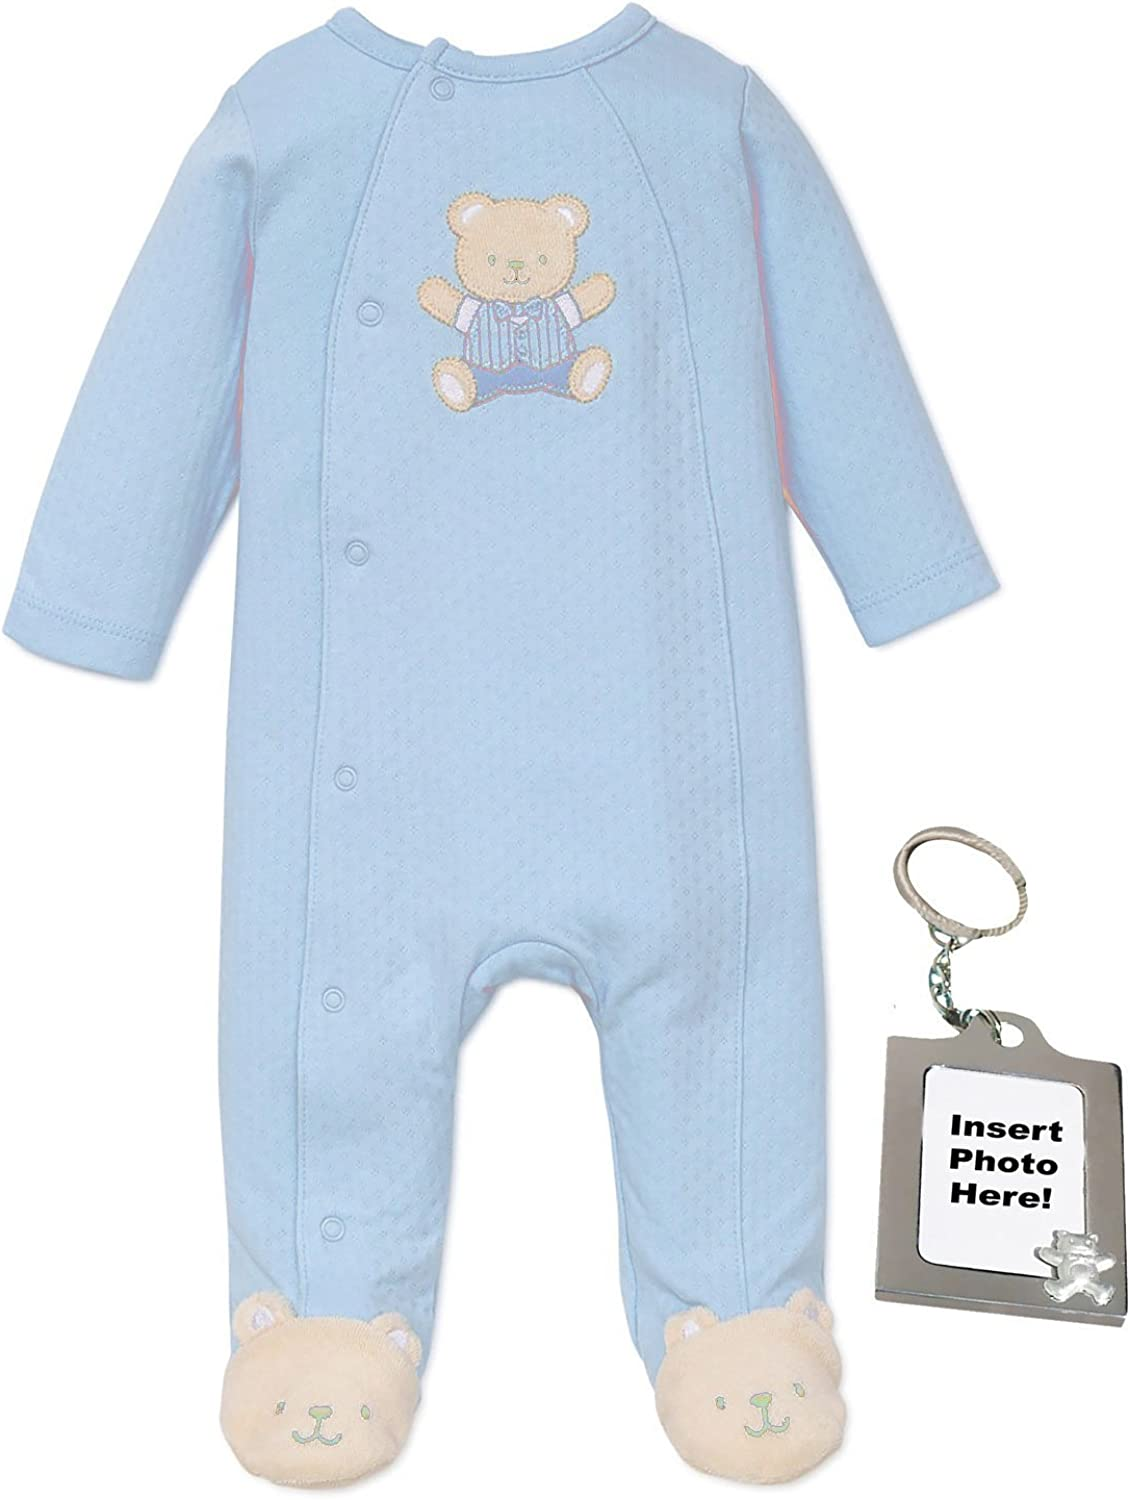 Little Me Neutral Baby Clothes for Preemie Newborn Boys or Girls One Piece Footie Footed Sleeper